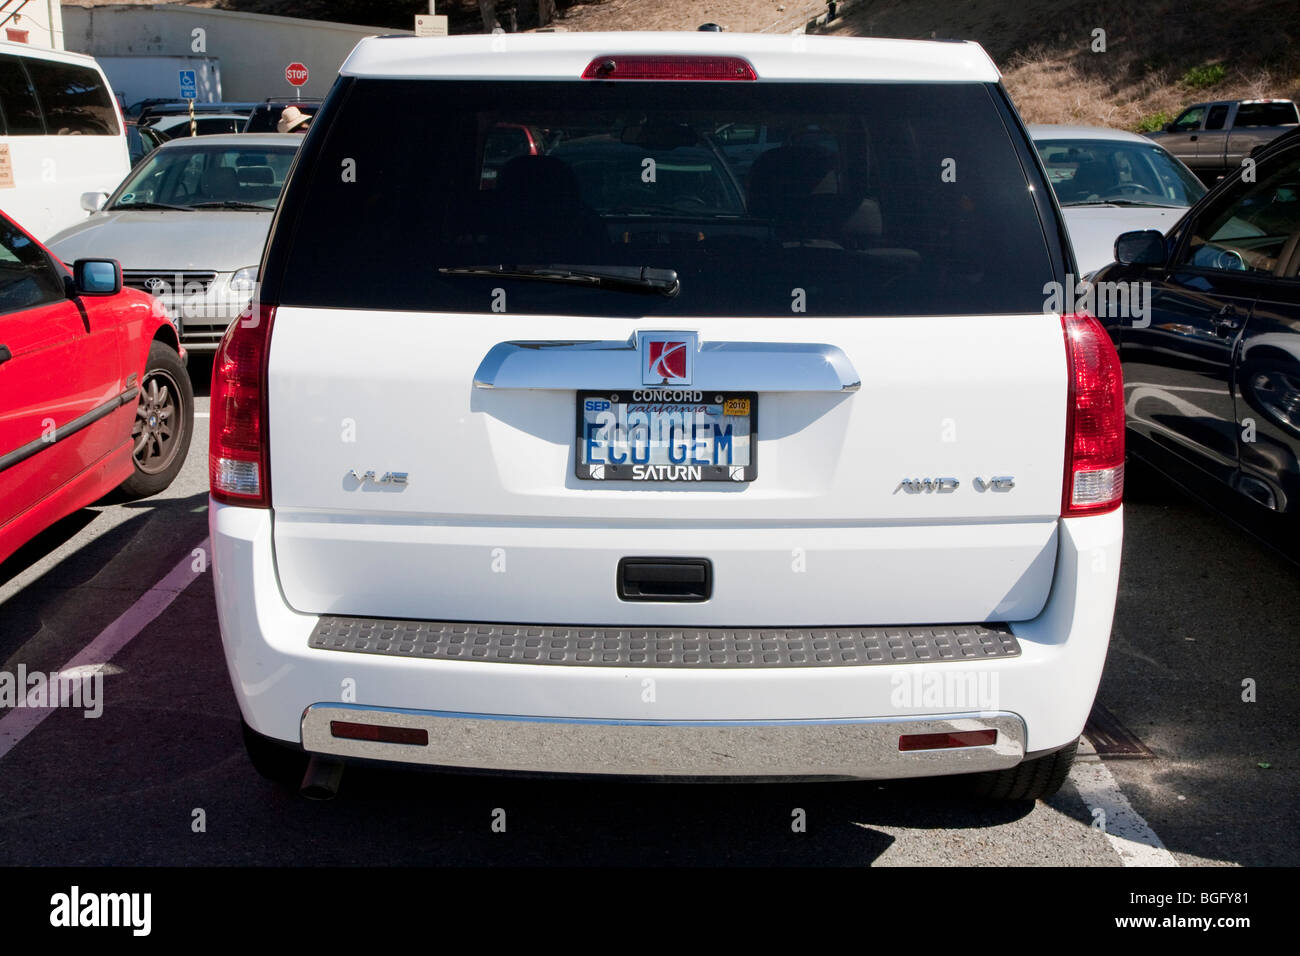 Rear View Of White California Eco Gem Personalized License Plate